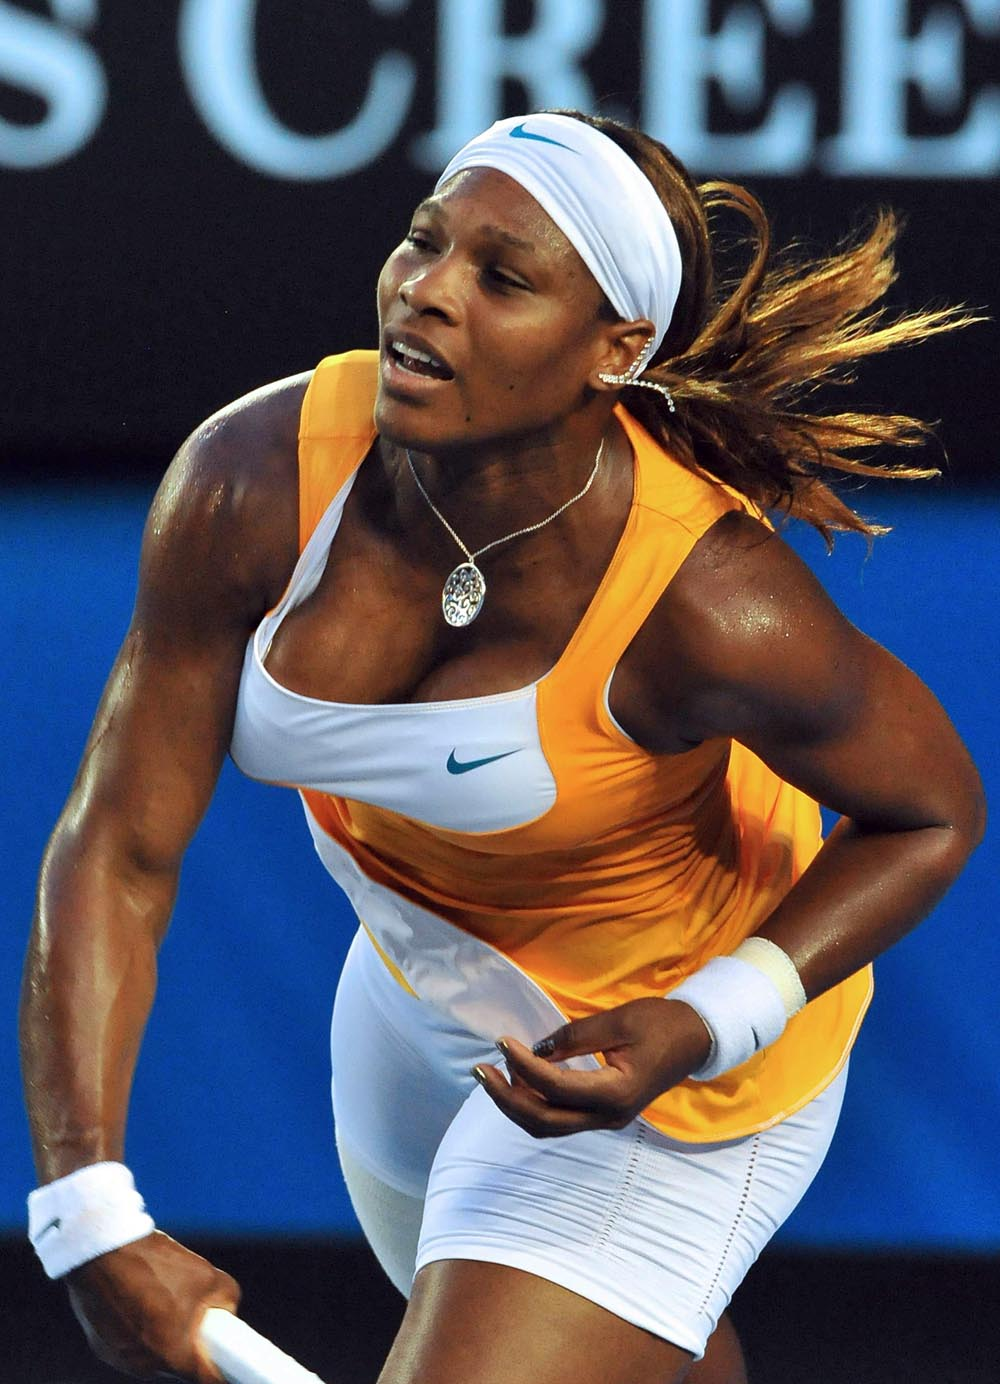 Serena Williams Hot Nude Pics